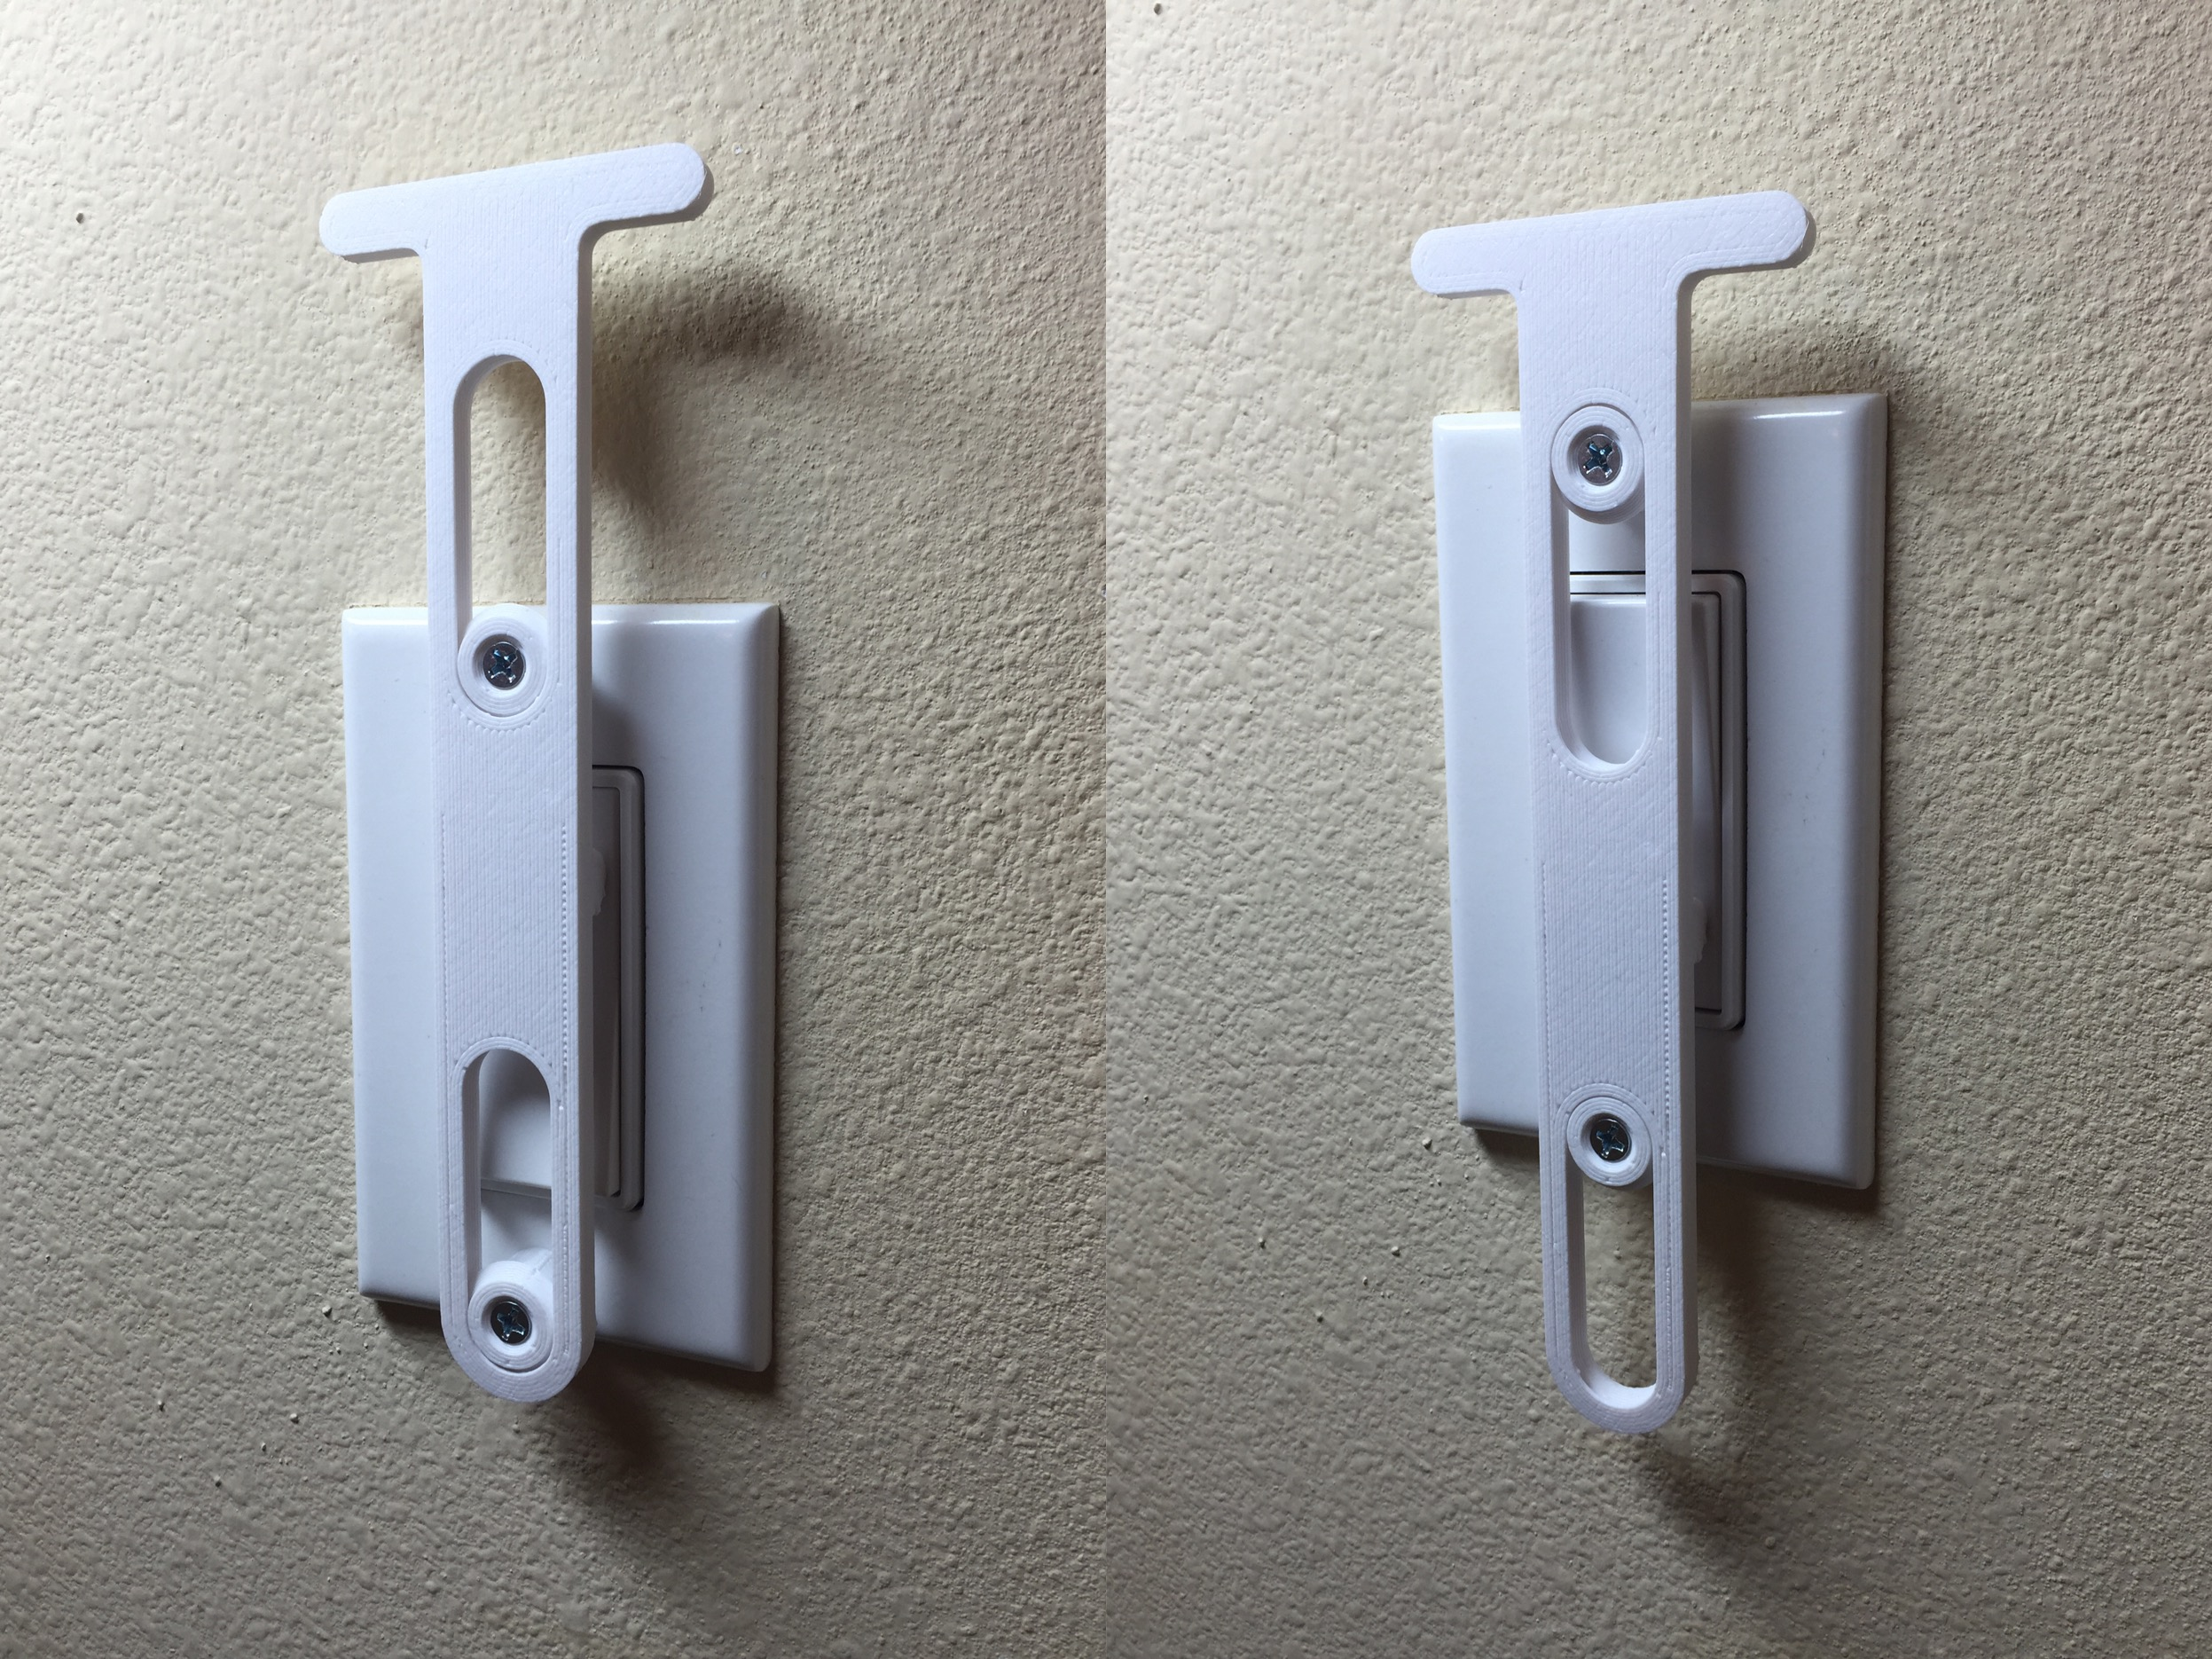 Decora light switch extension by danmar - Thingiverse